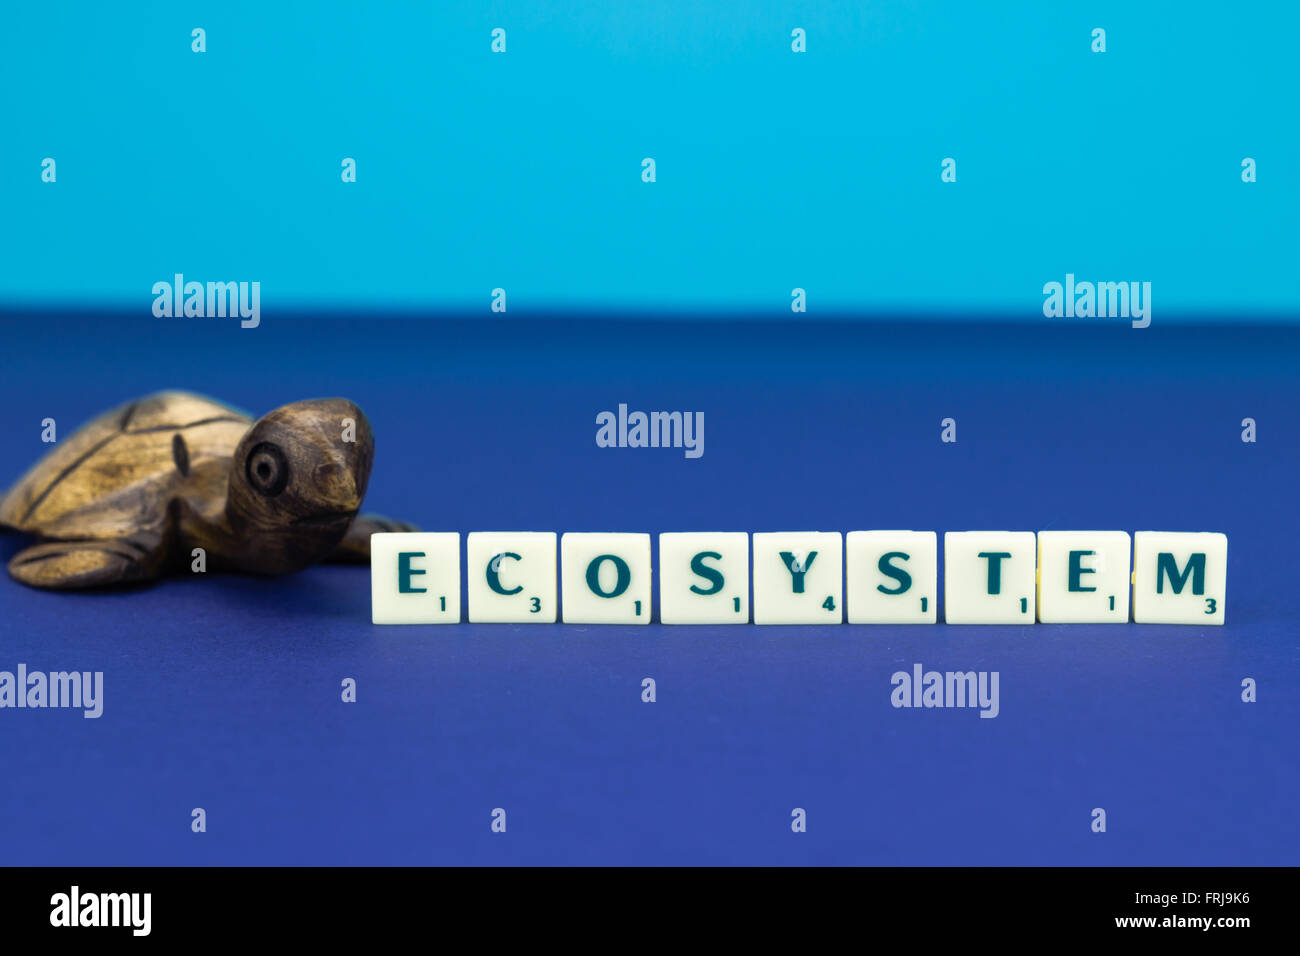 Wooden turtle with ecosystem sign on blue background - Stock Image